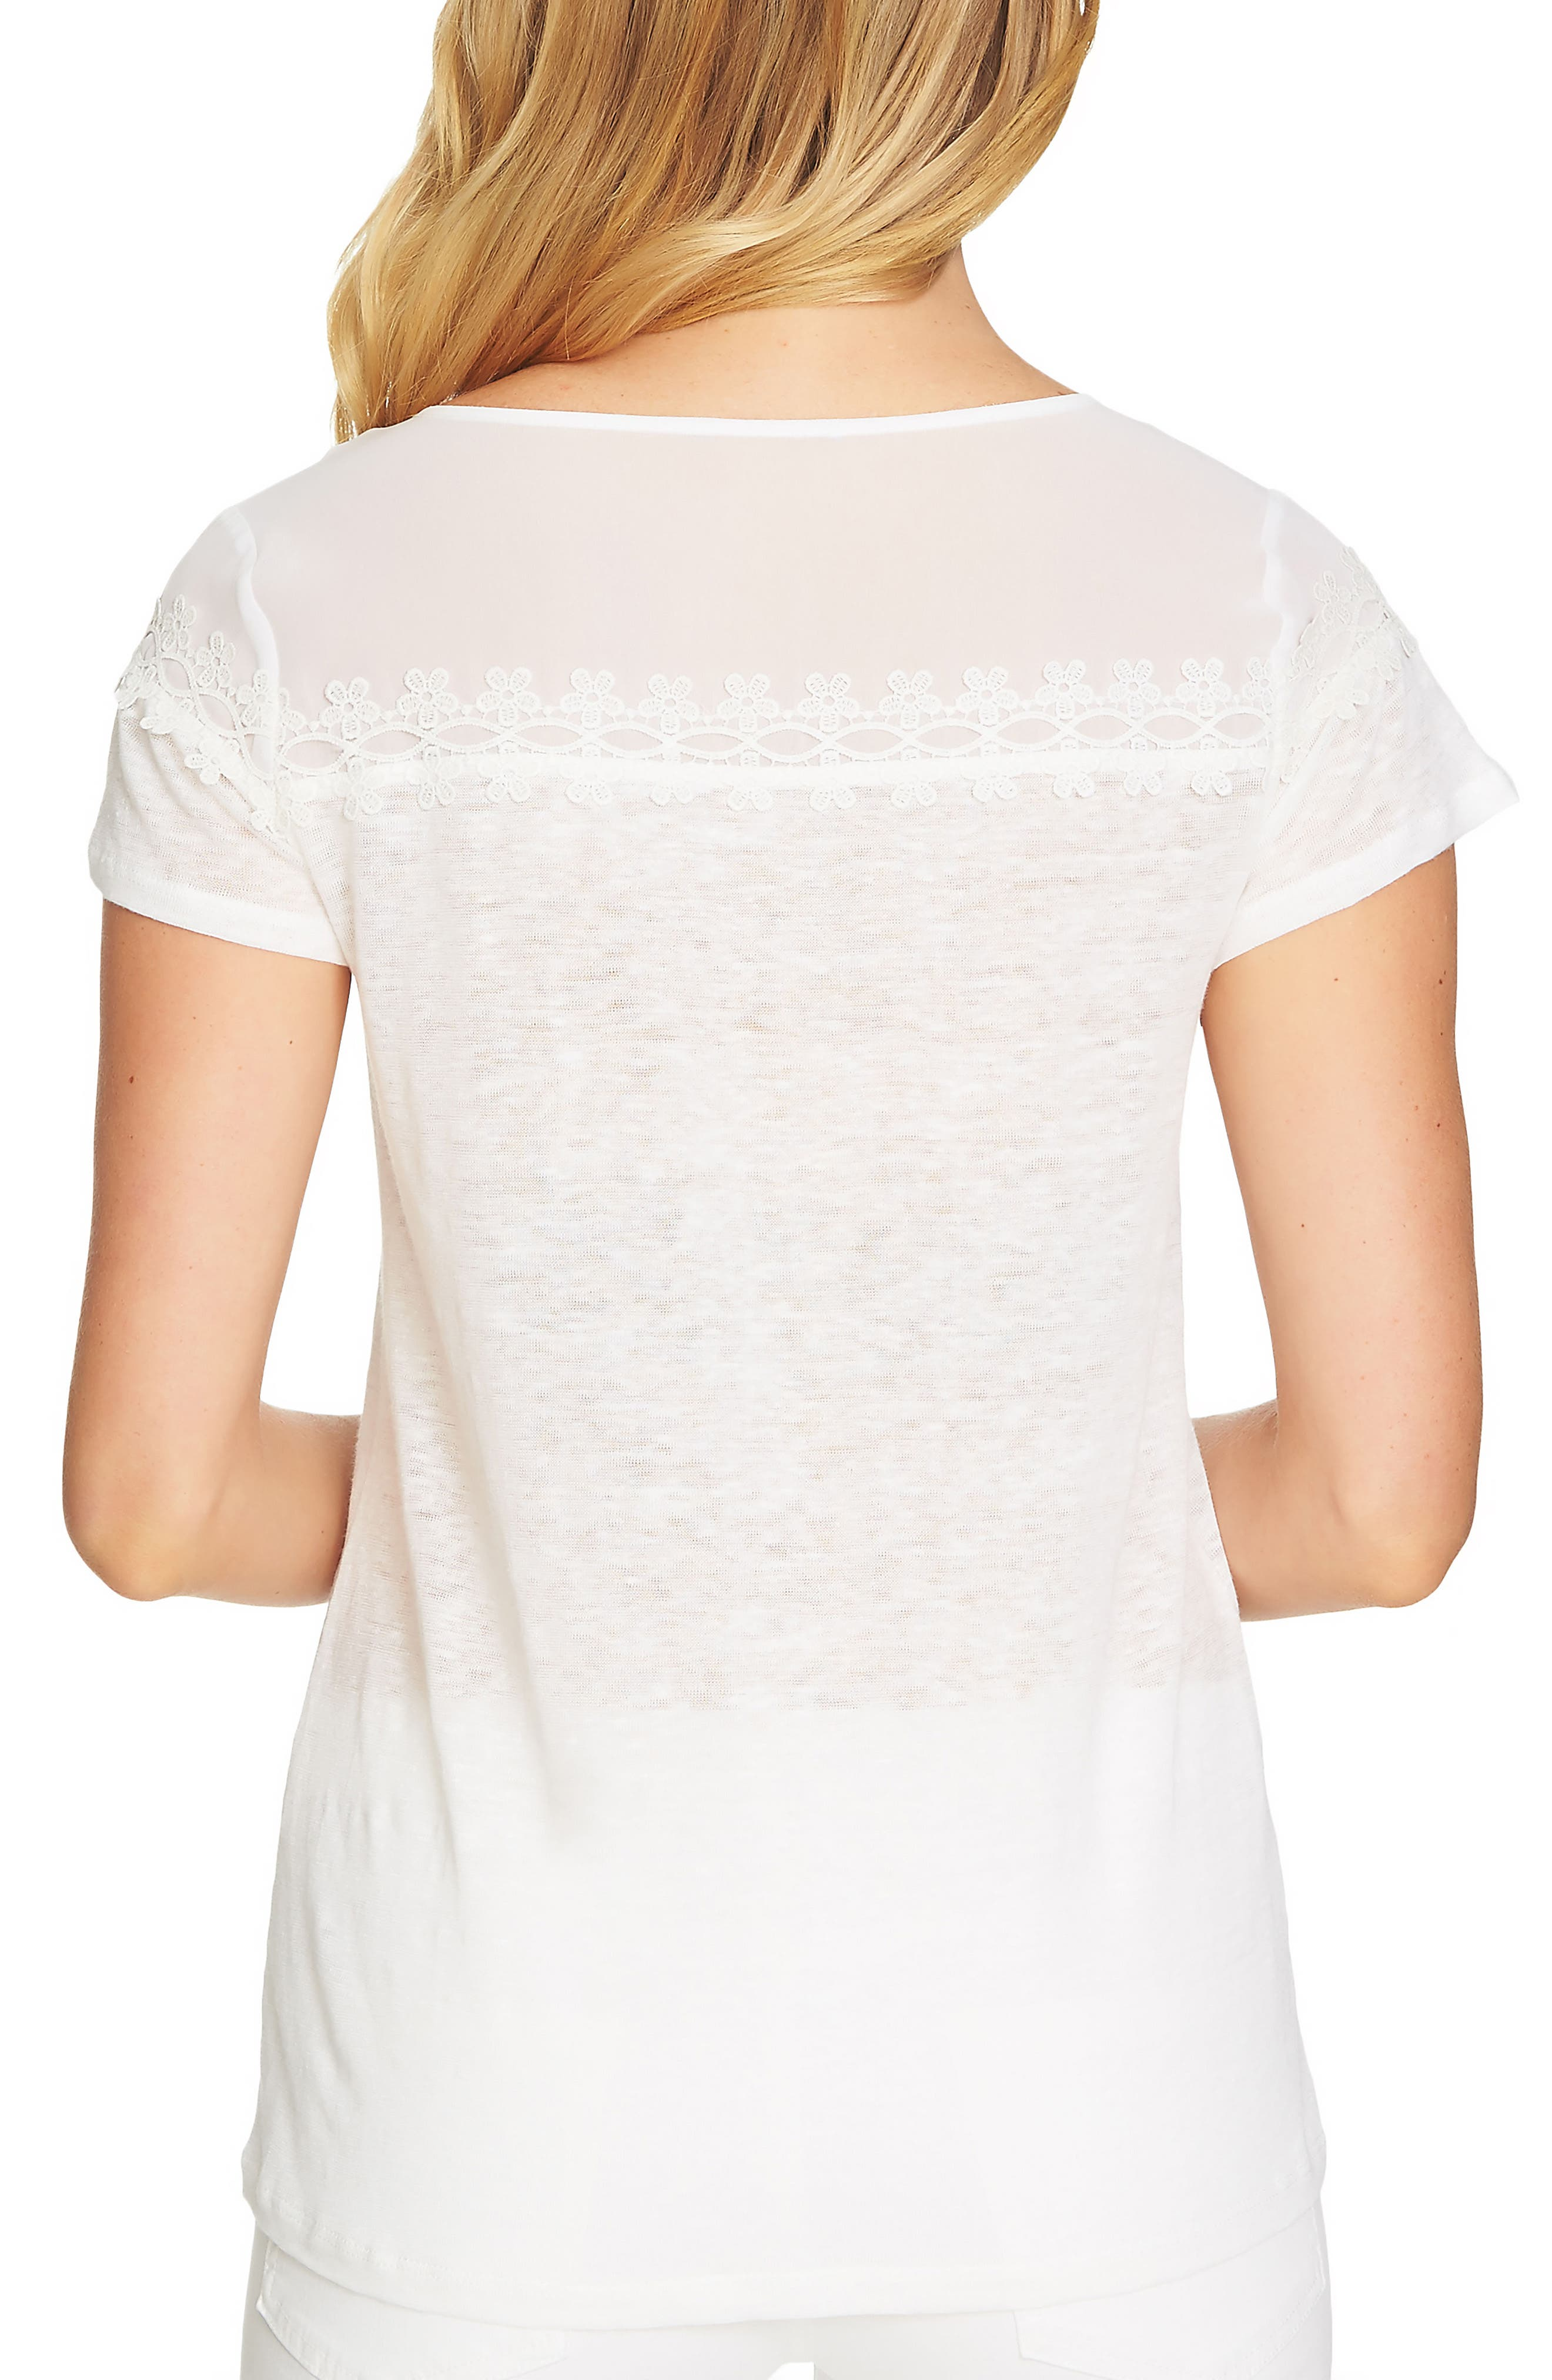 Linen and Lace Short Sleeve Top,                             Alternate thumbnail 2, color,                             Ultra White